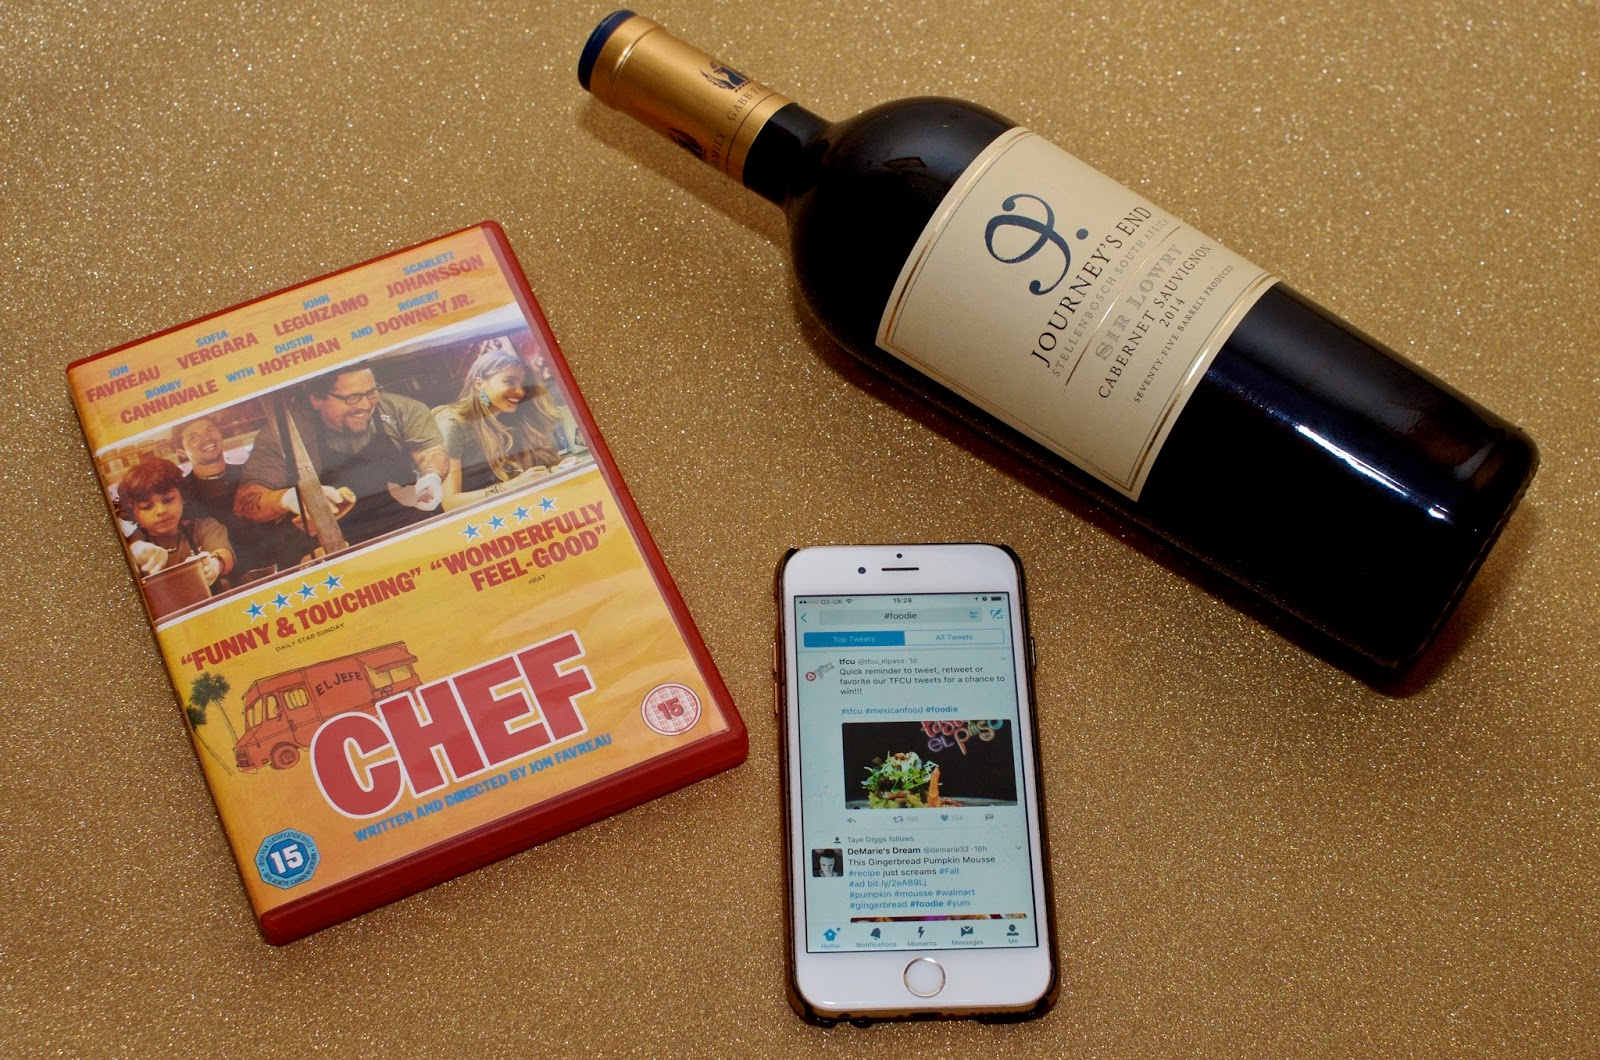 Chef DVD, bottle of wine and iPhone 6